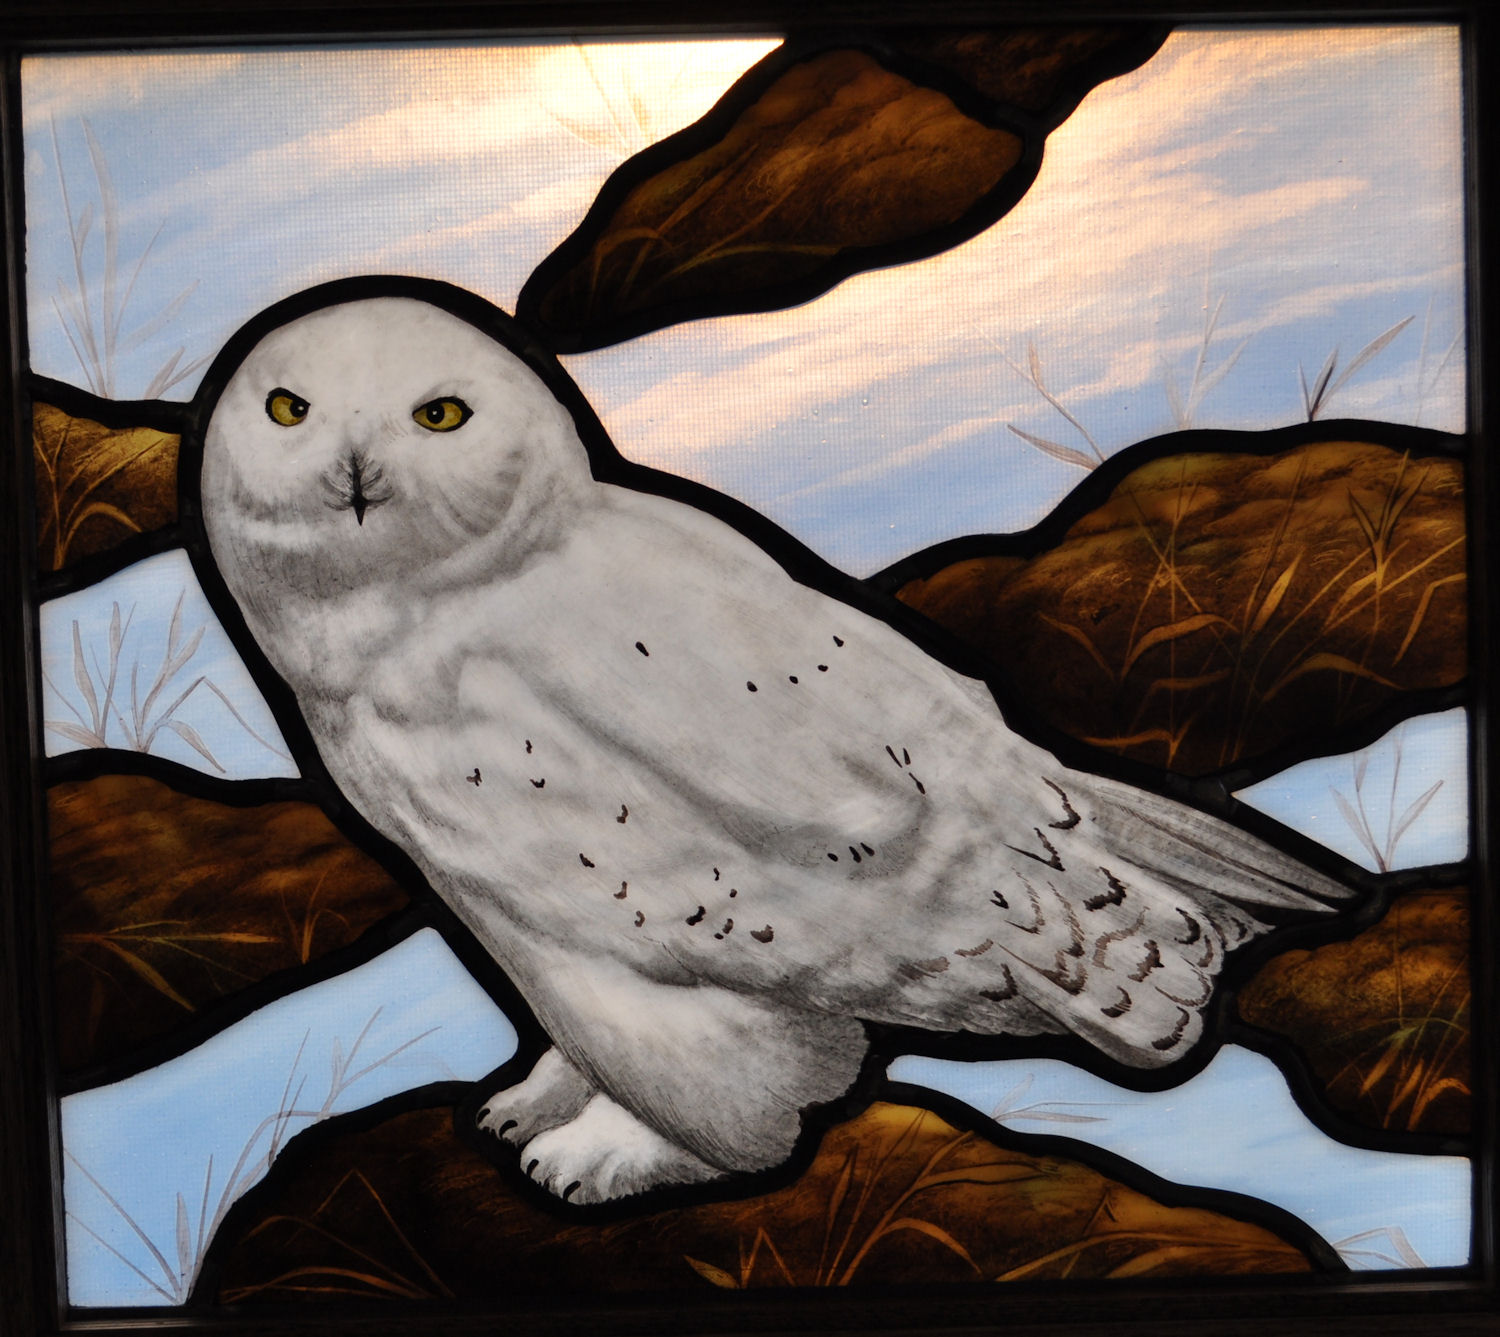 Stained Glass transom window featuring a Snow Owl